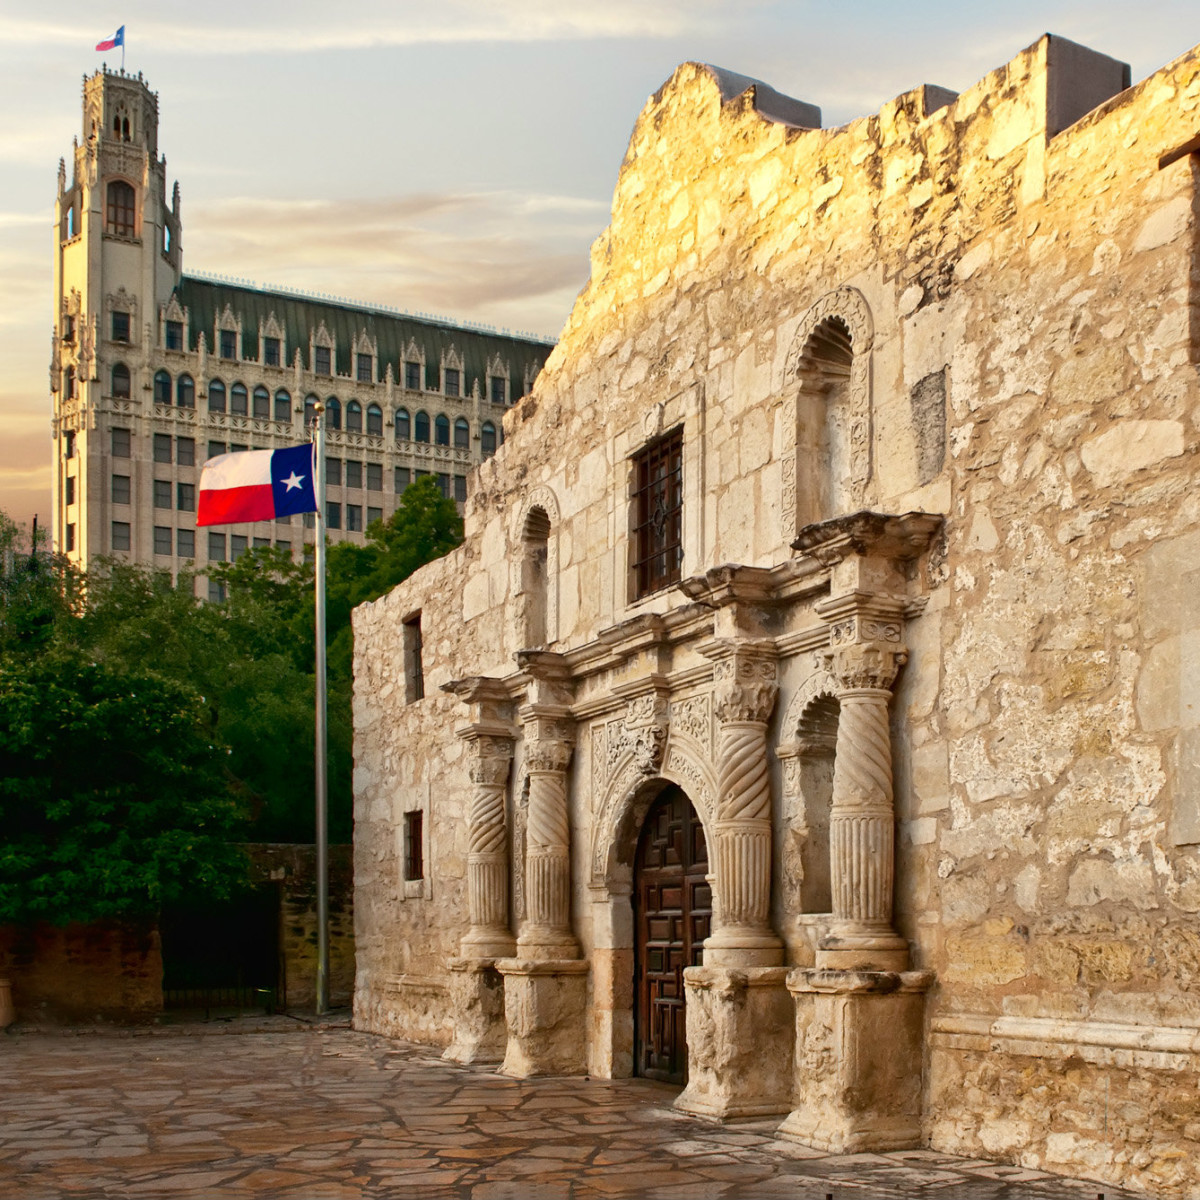 The Emily Morgan Hotel and the Alamo san antonio